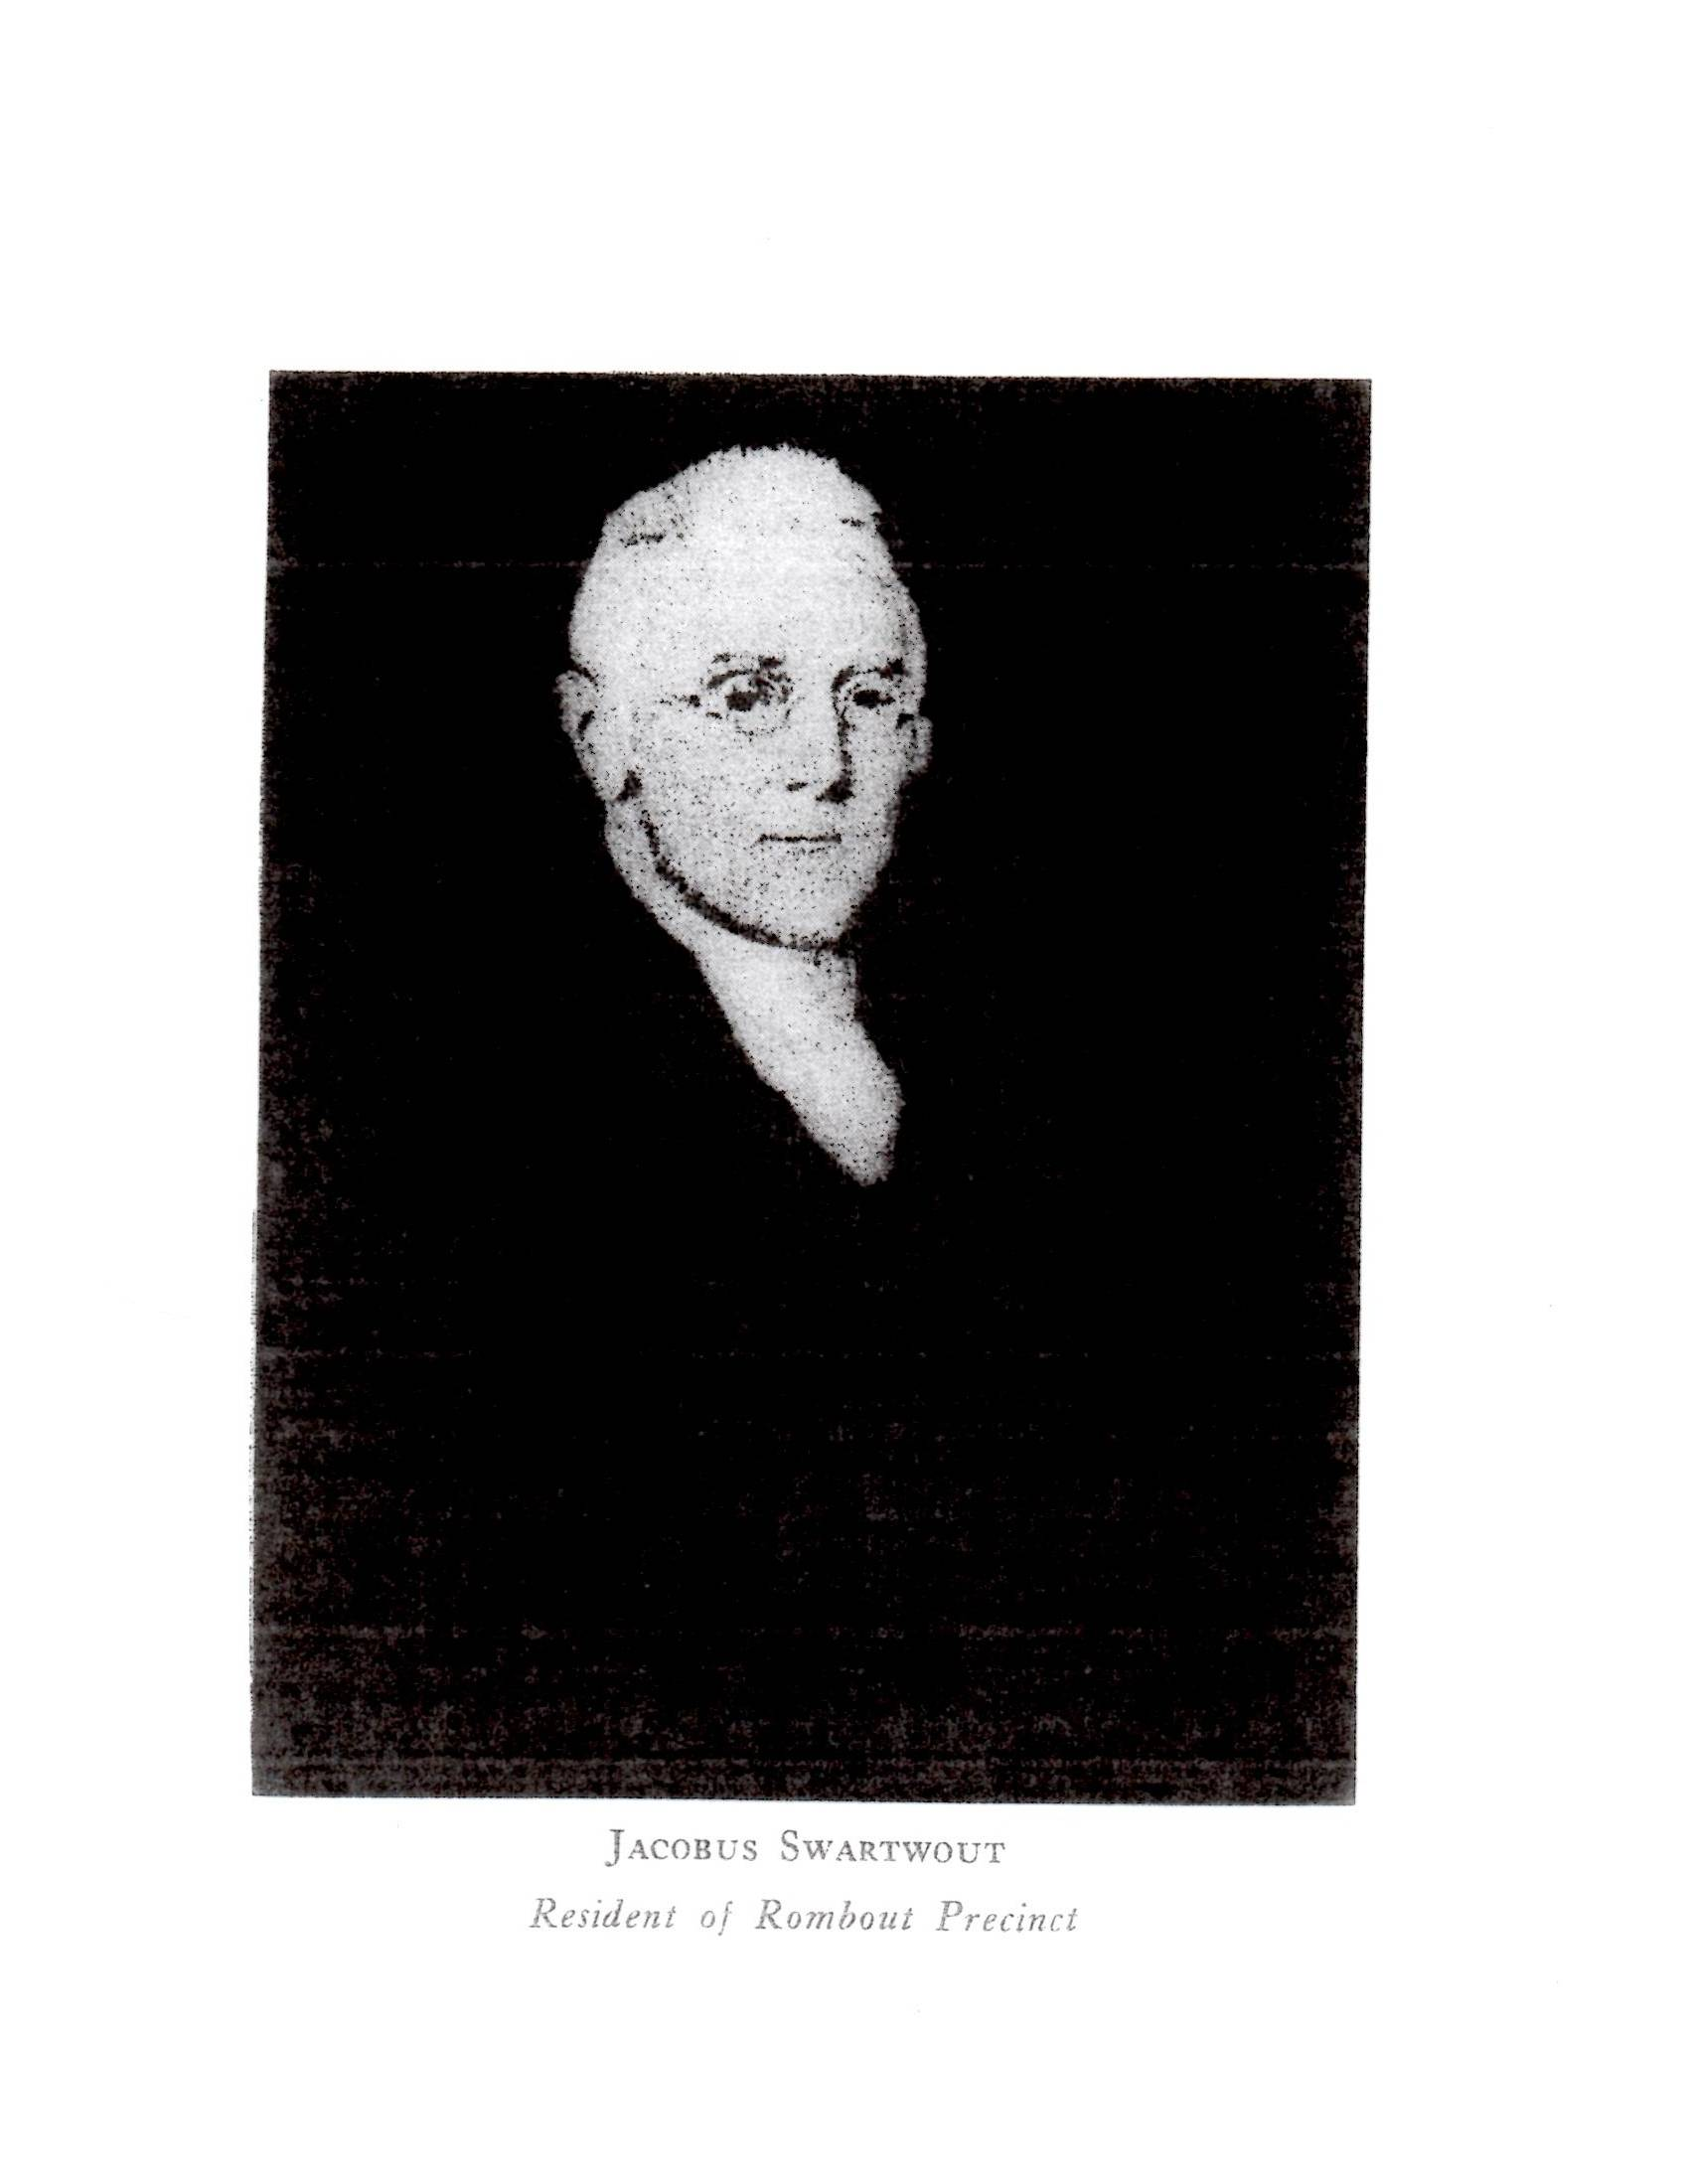 General Jacobus Swartwout